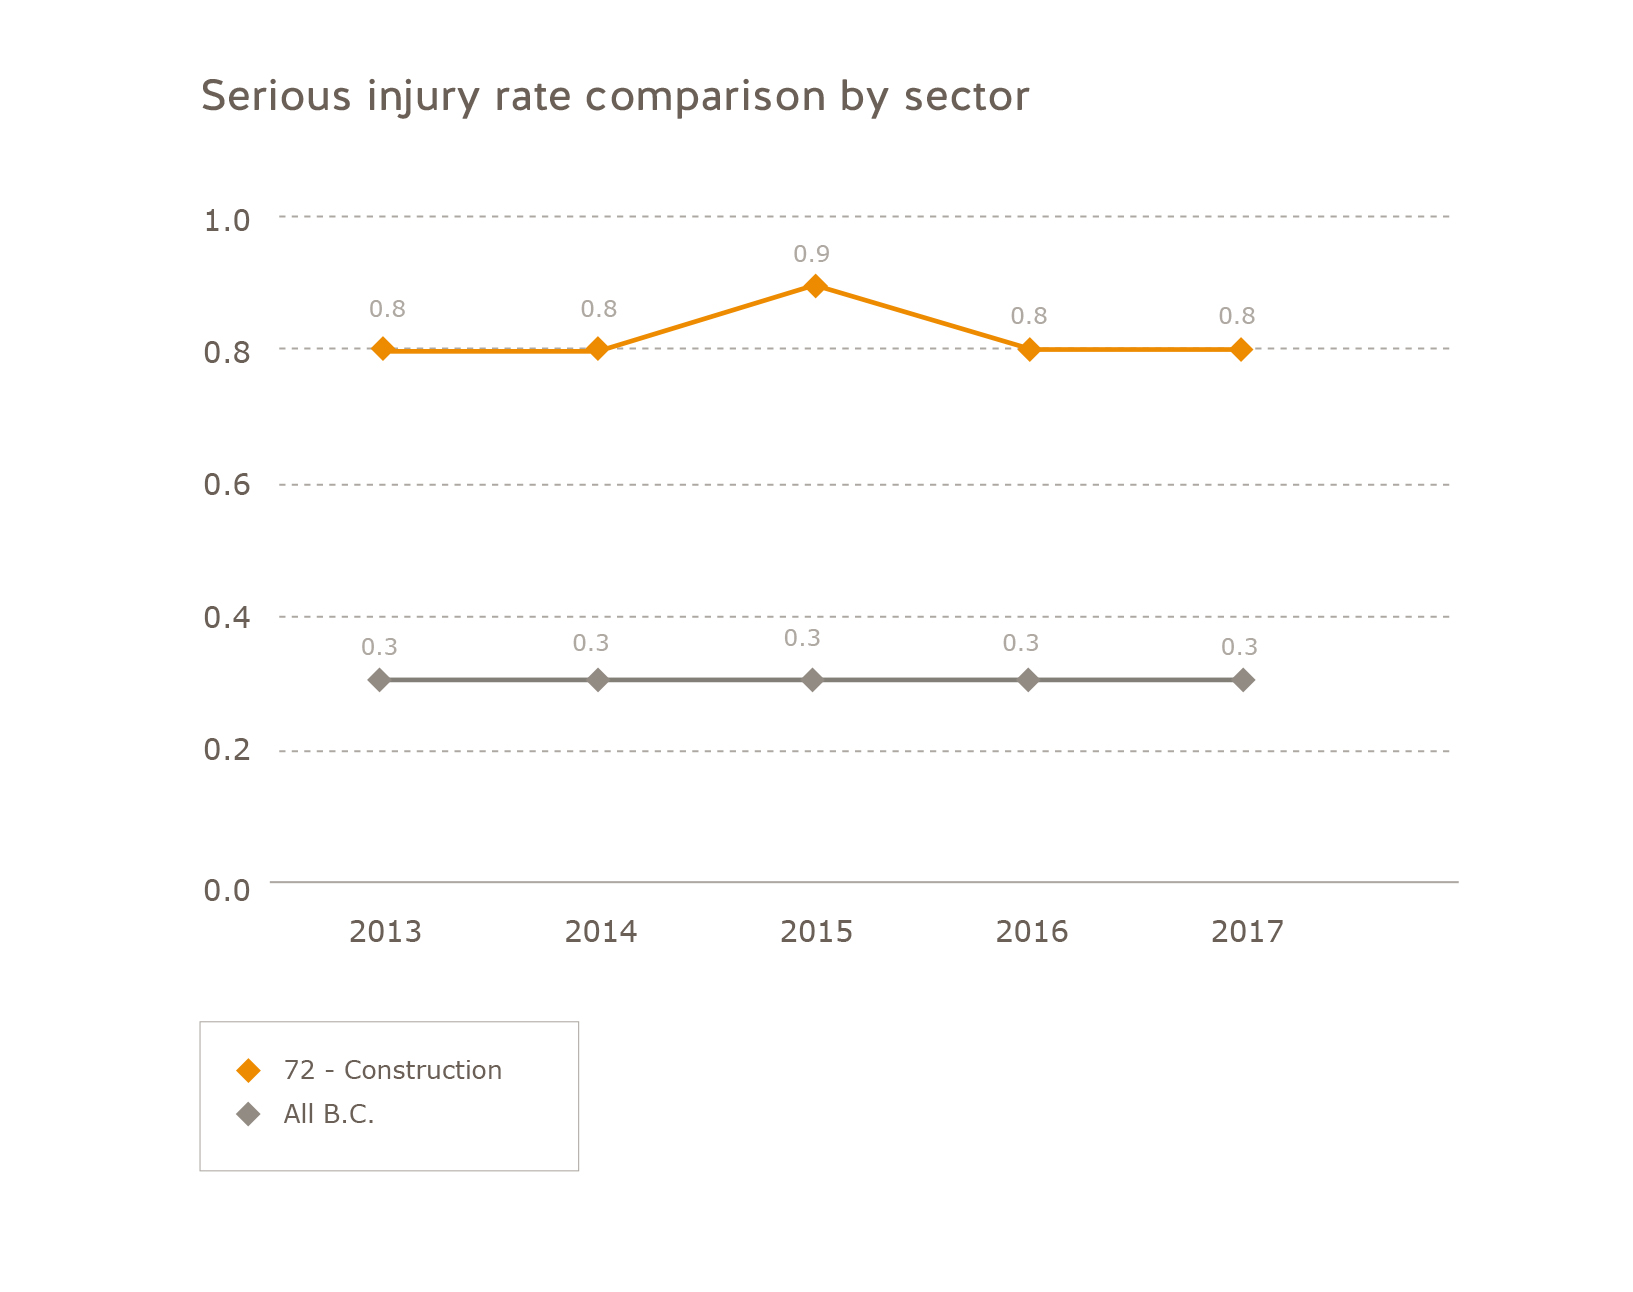 Serious injury rate comparison construction sector 2013 to 2017. Construction: 2013 = 0.8, 2014 = 0.8, 2015 = 0.9, 2016 = 0.8, 2017 = 0.8. All of B.C.: 2013 = 0.3, 2014 = 0.3, 2015 = 0.3, 2016 = 0.3, 2017 = 0.3